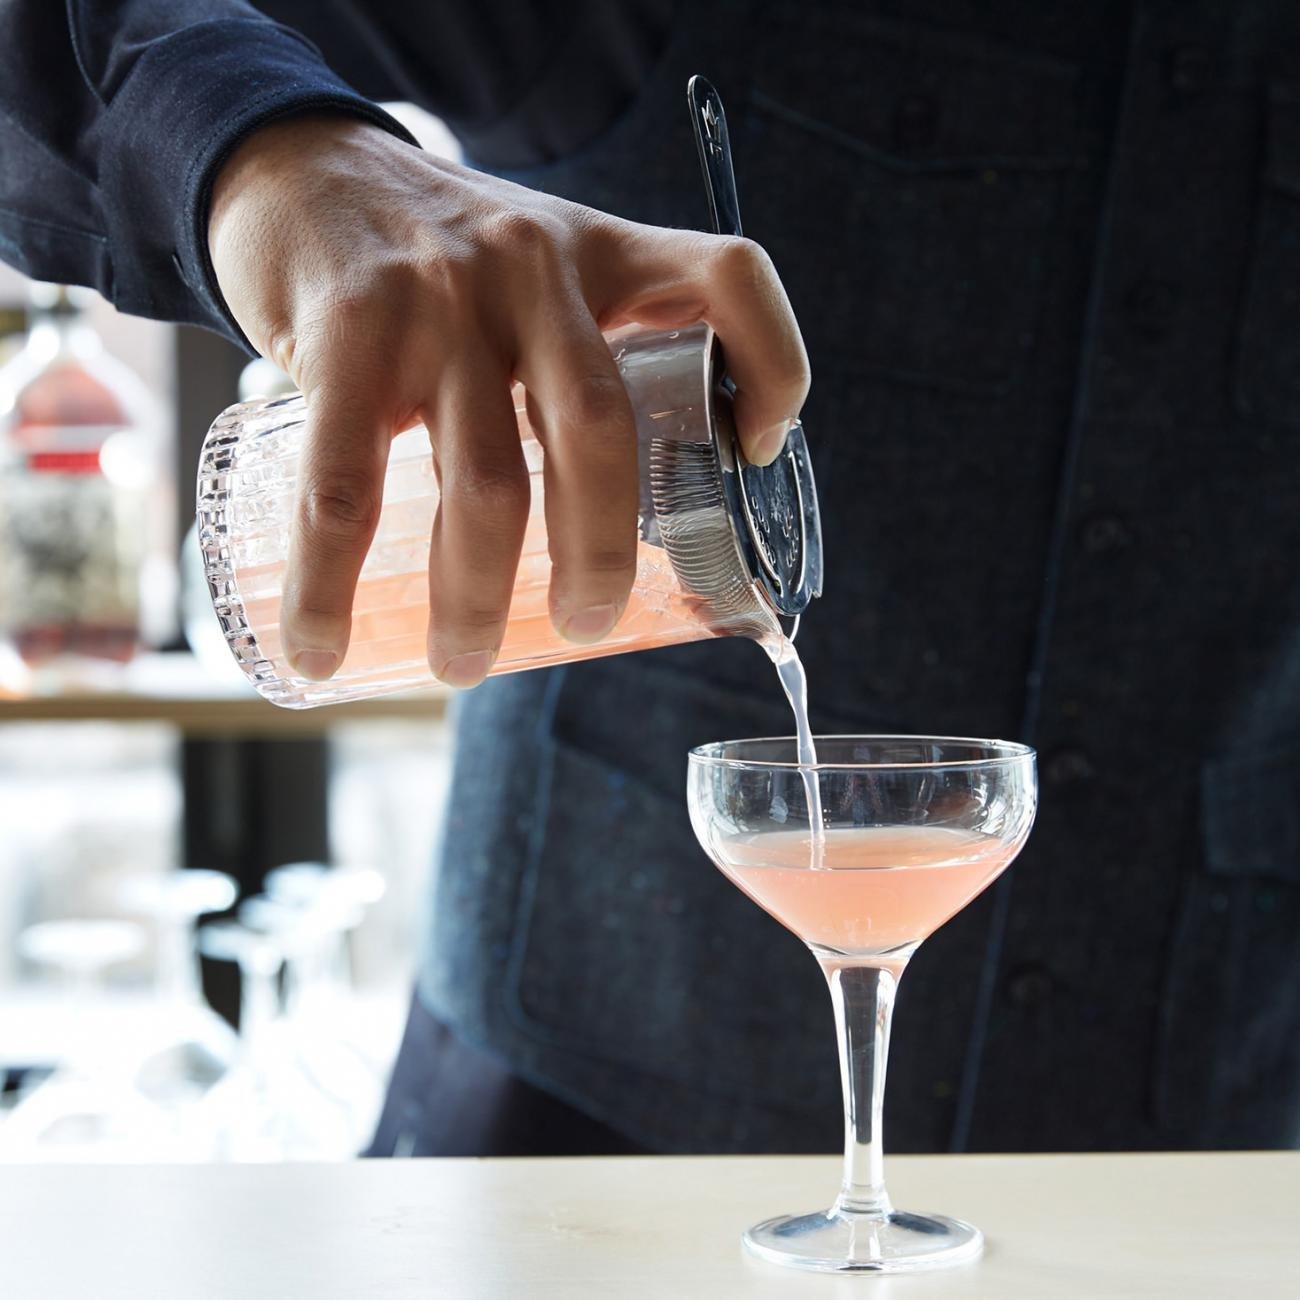 A man pouring a light pink cocktail from a shaker into a glass